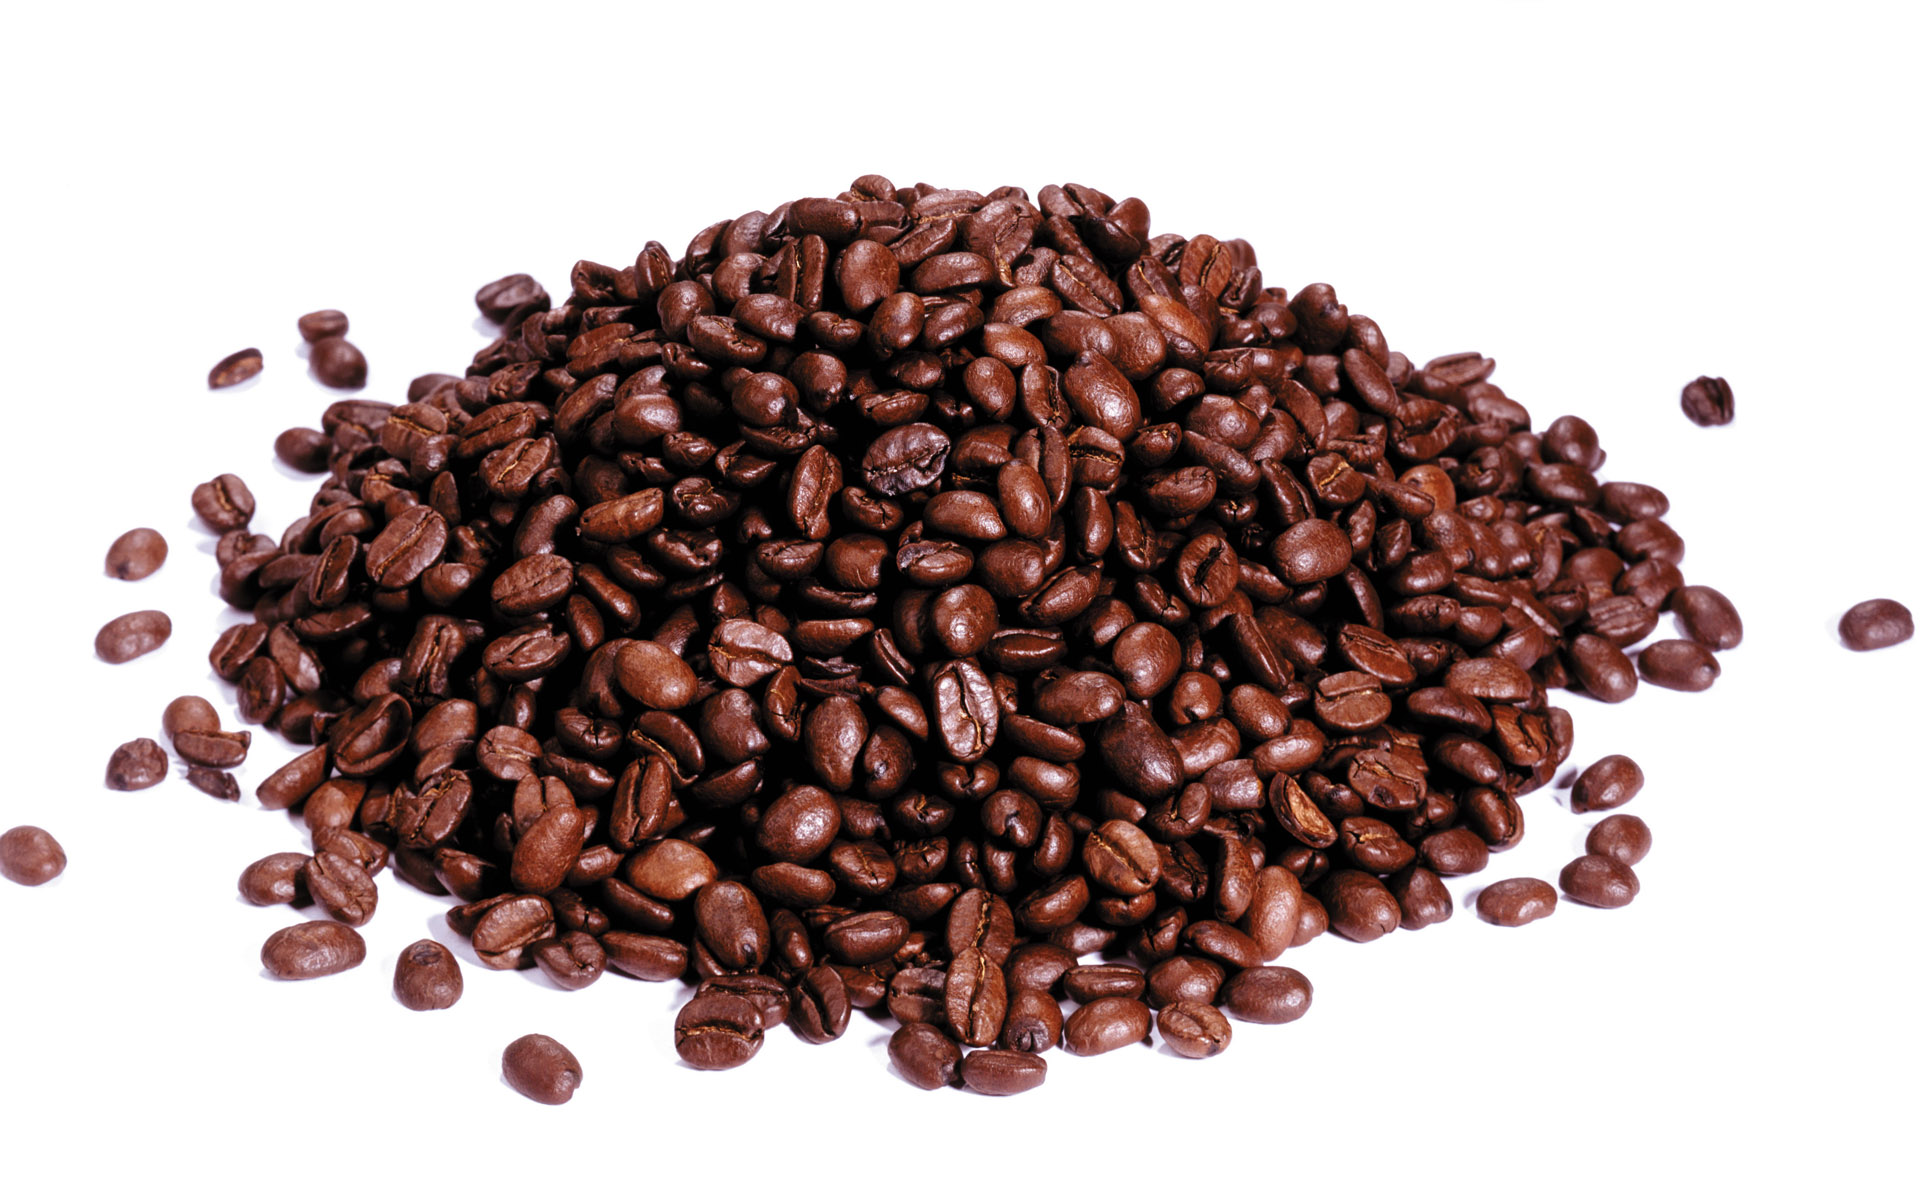 Coffee wallpaper high definition 10008